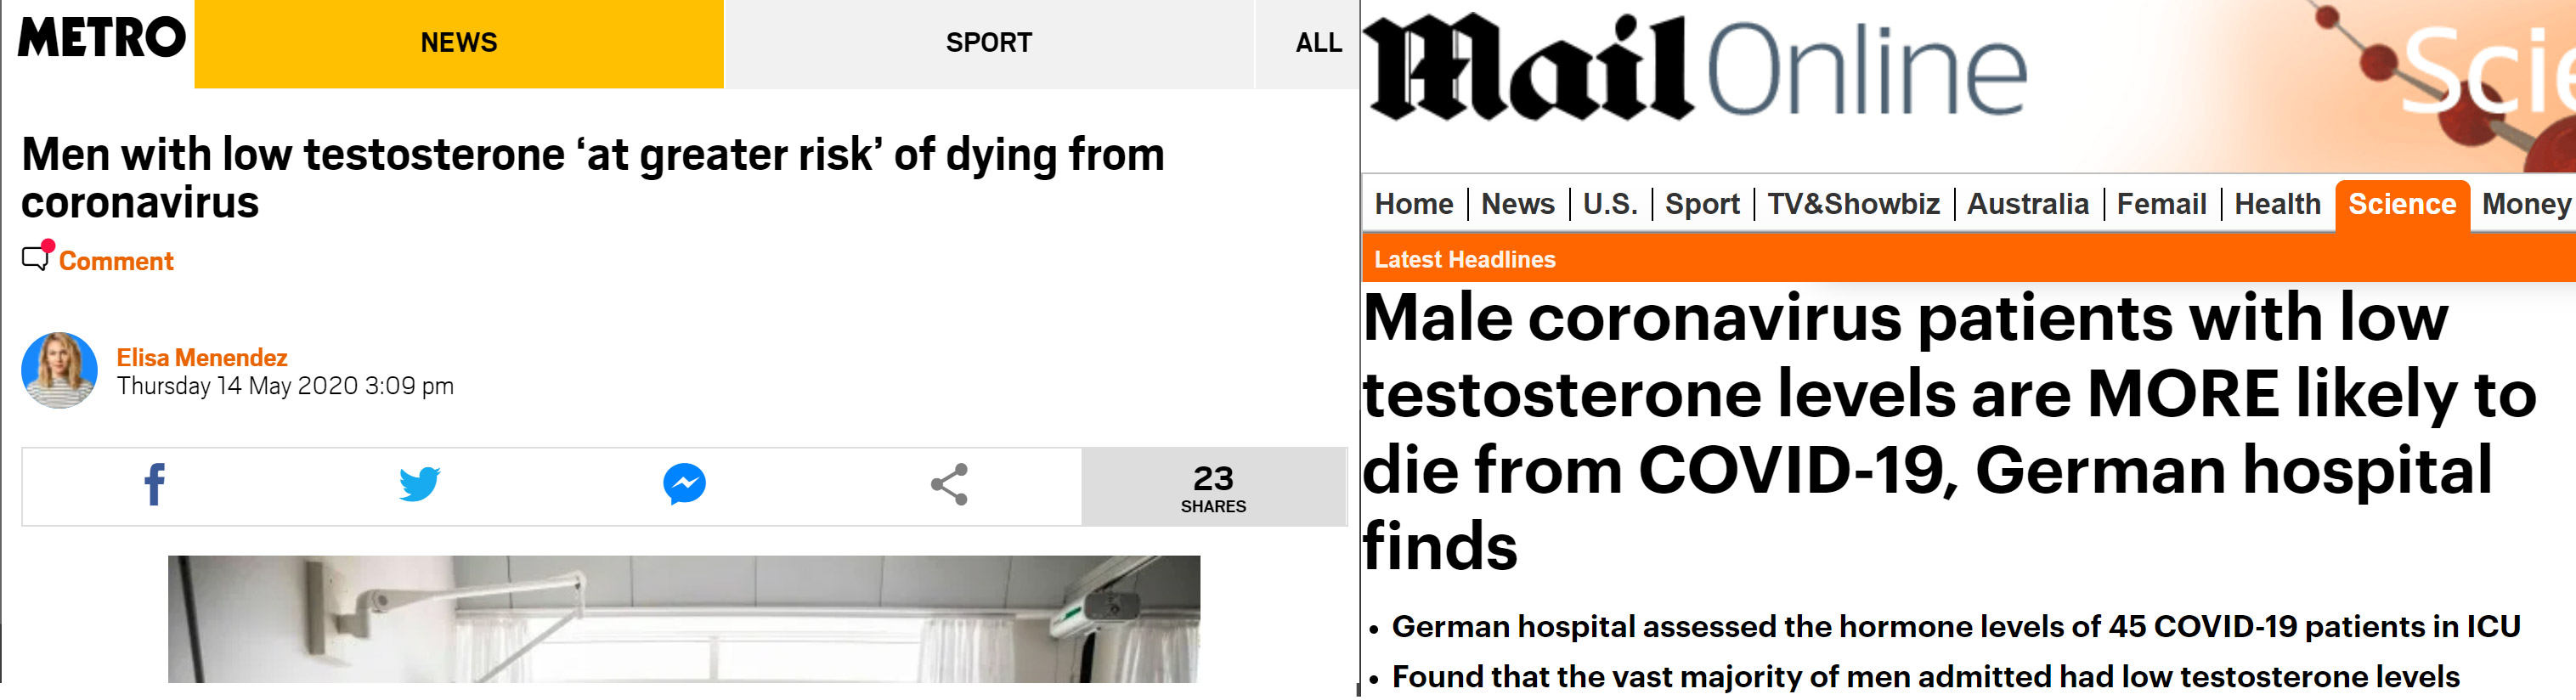 Newspaper headlines about Covid-19 and testosterone